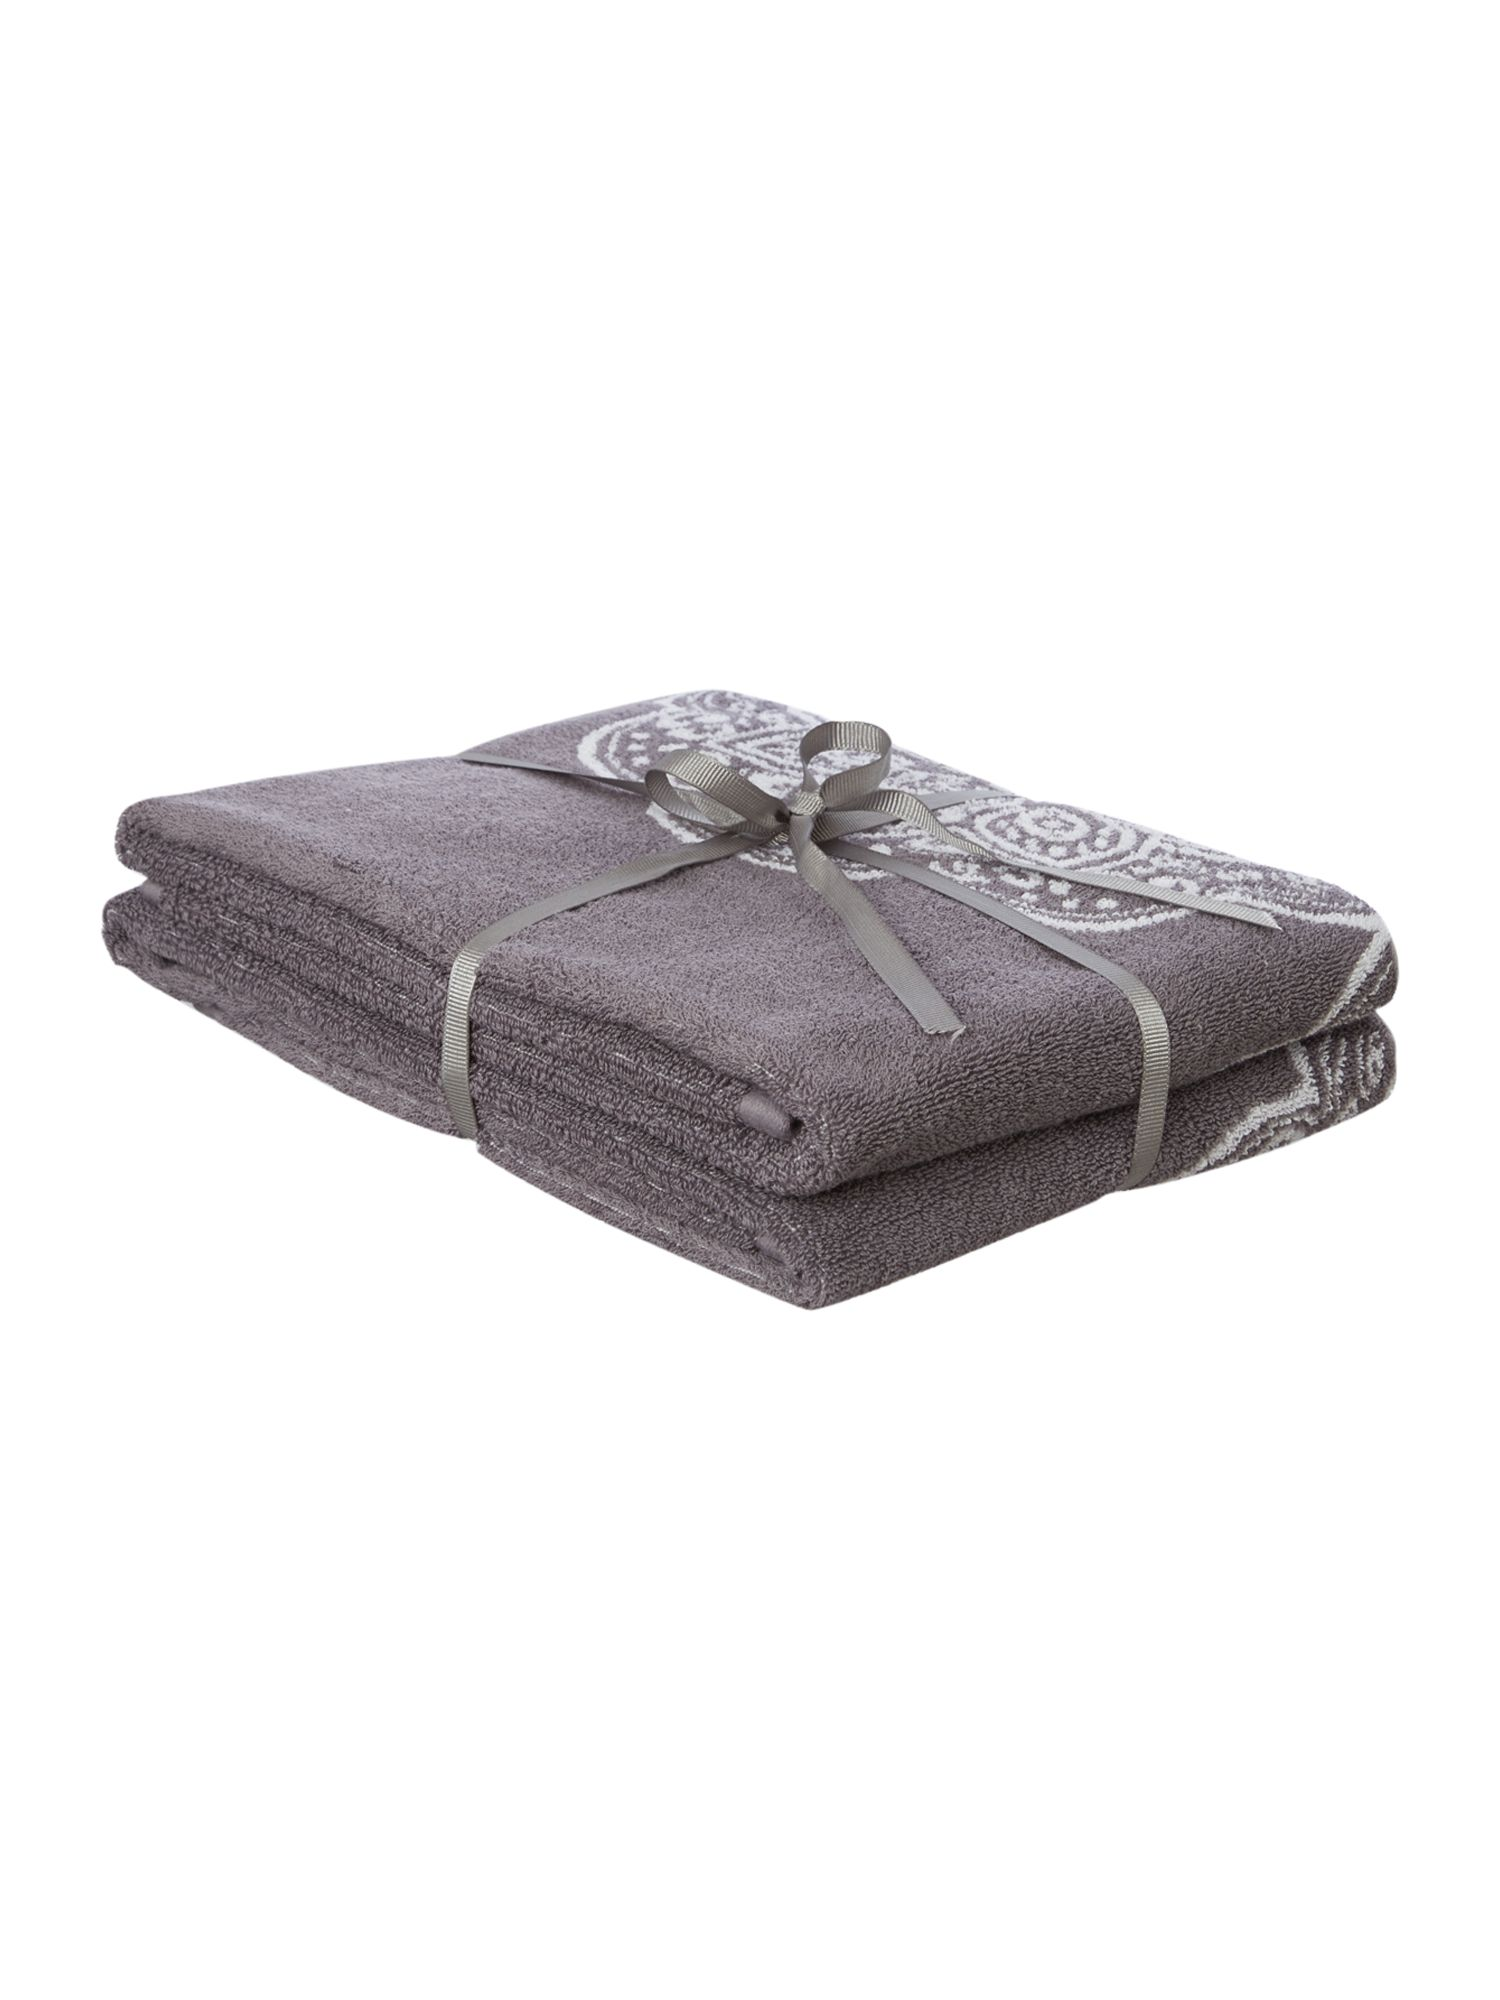 Serenity pack of 2 hand towels